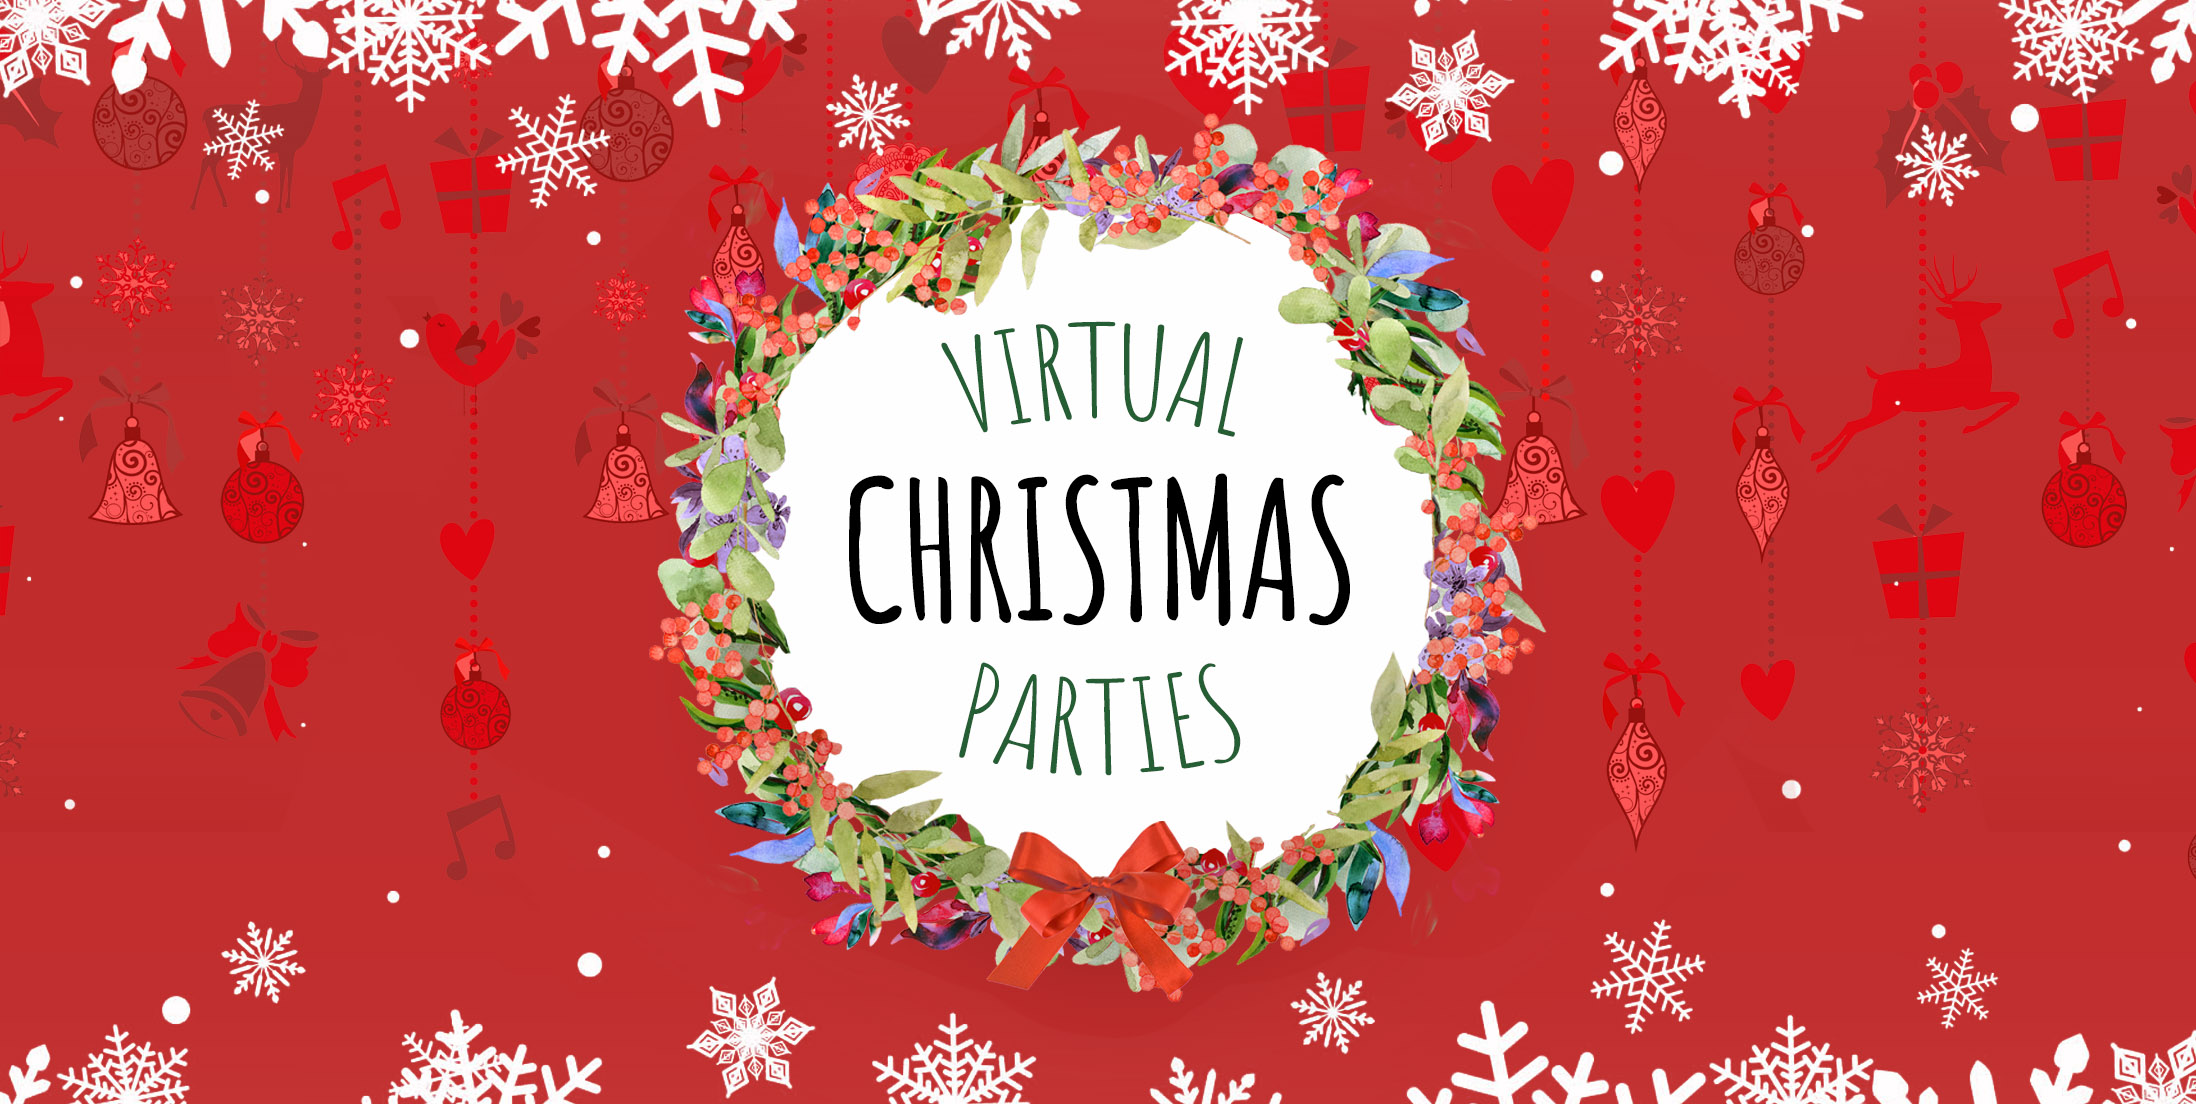 7 Festive Online Christmas Ideas For Remote Staff